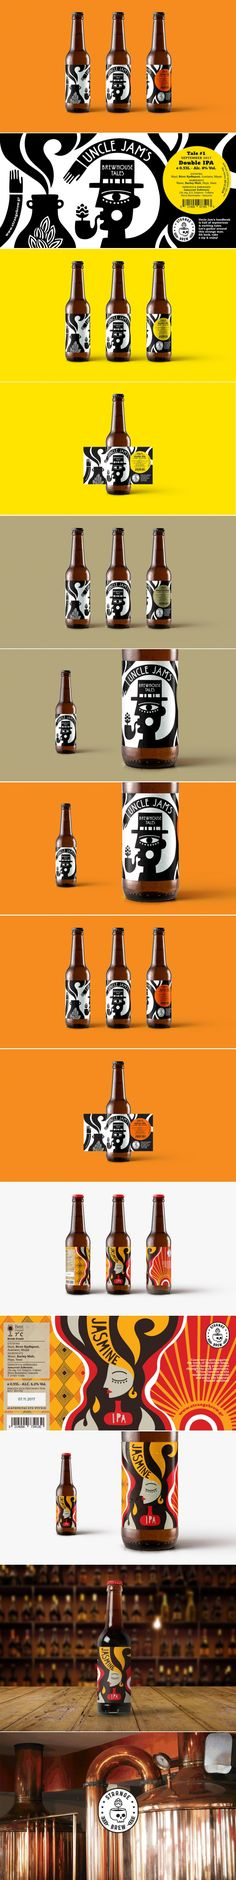 "This ""Strange Brew"" Has A Mysterious Yet Playful Look — The Dieline Beer Packaging, Food Packaging Design, Packaging Design Inspiration, Brand Packaging, Branding Design, Label Design, Package Design, Graphic Design, Bottle Design"